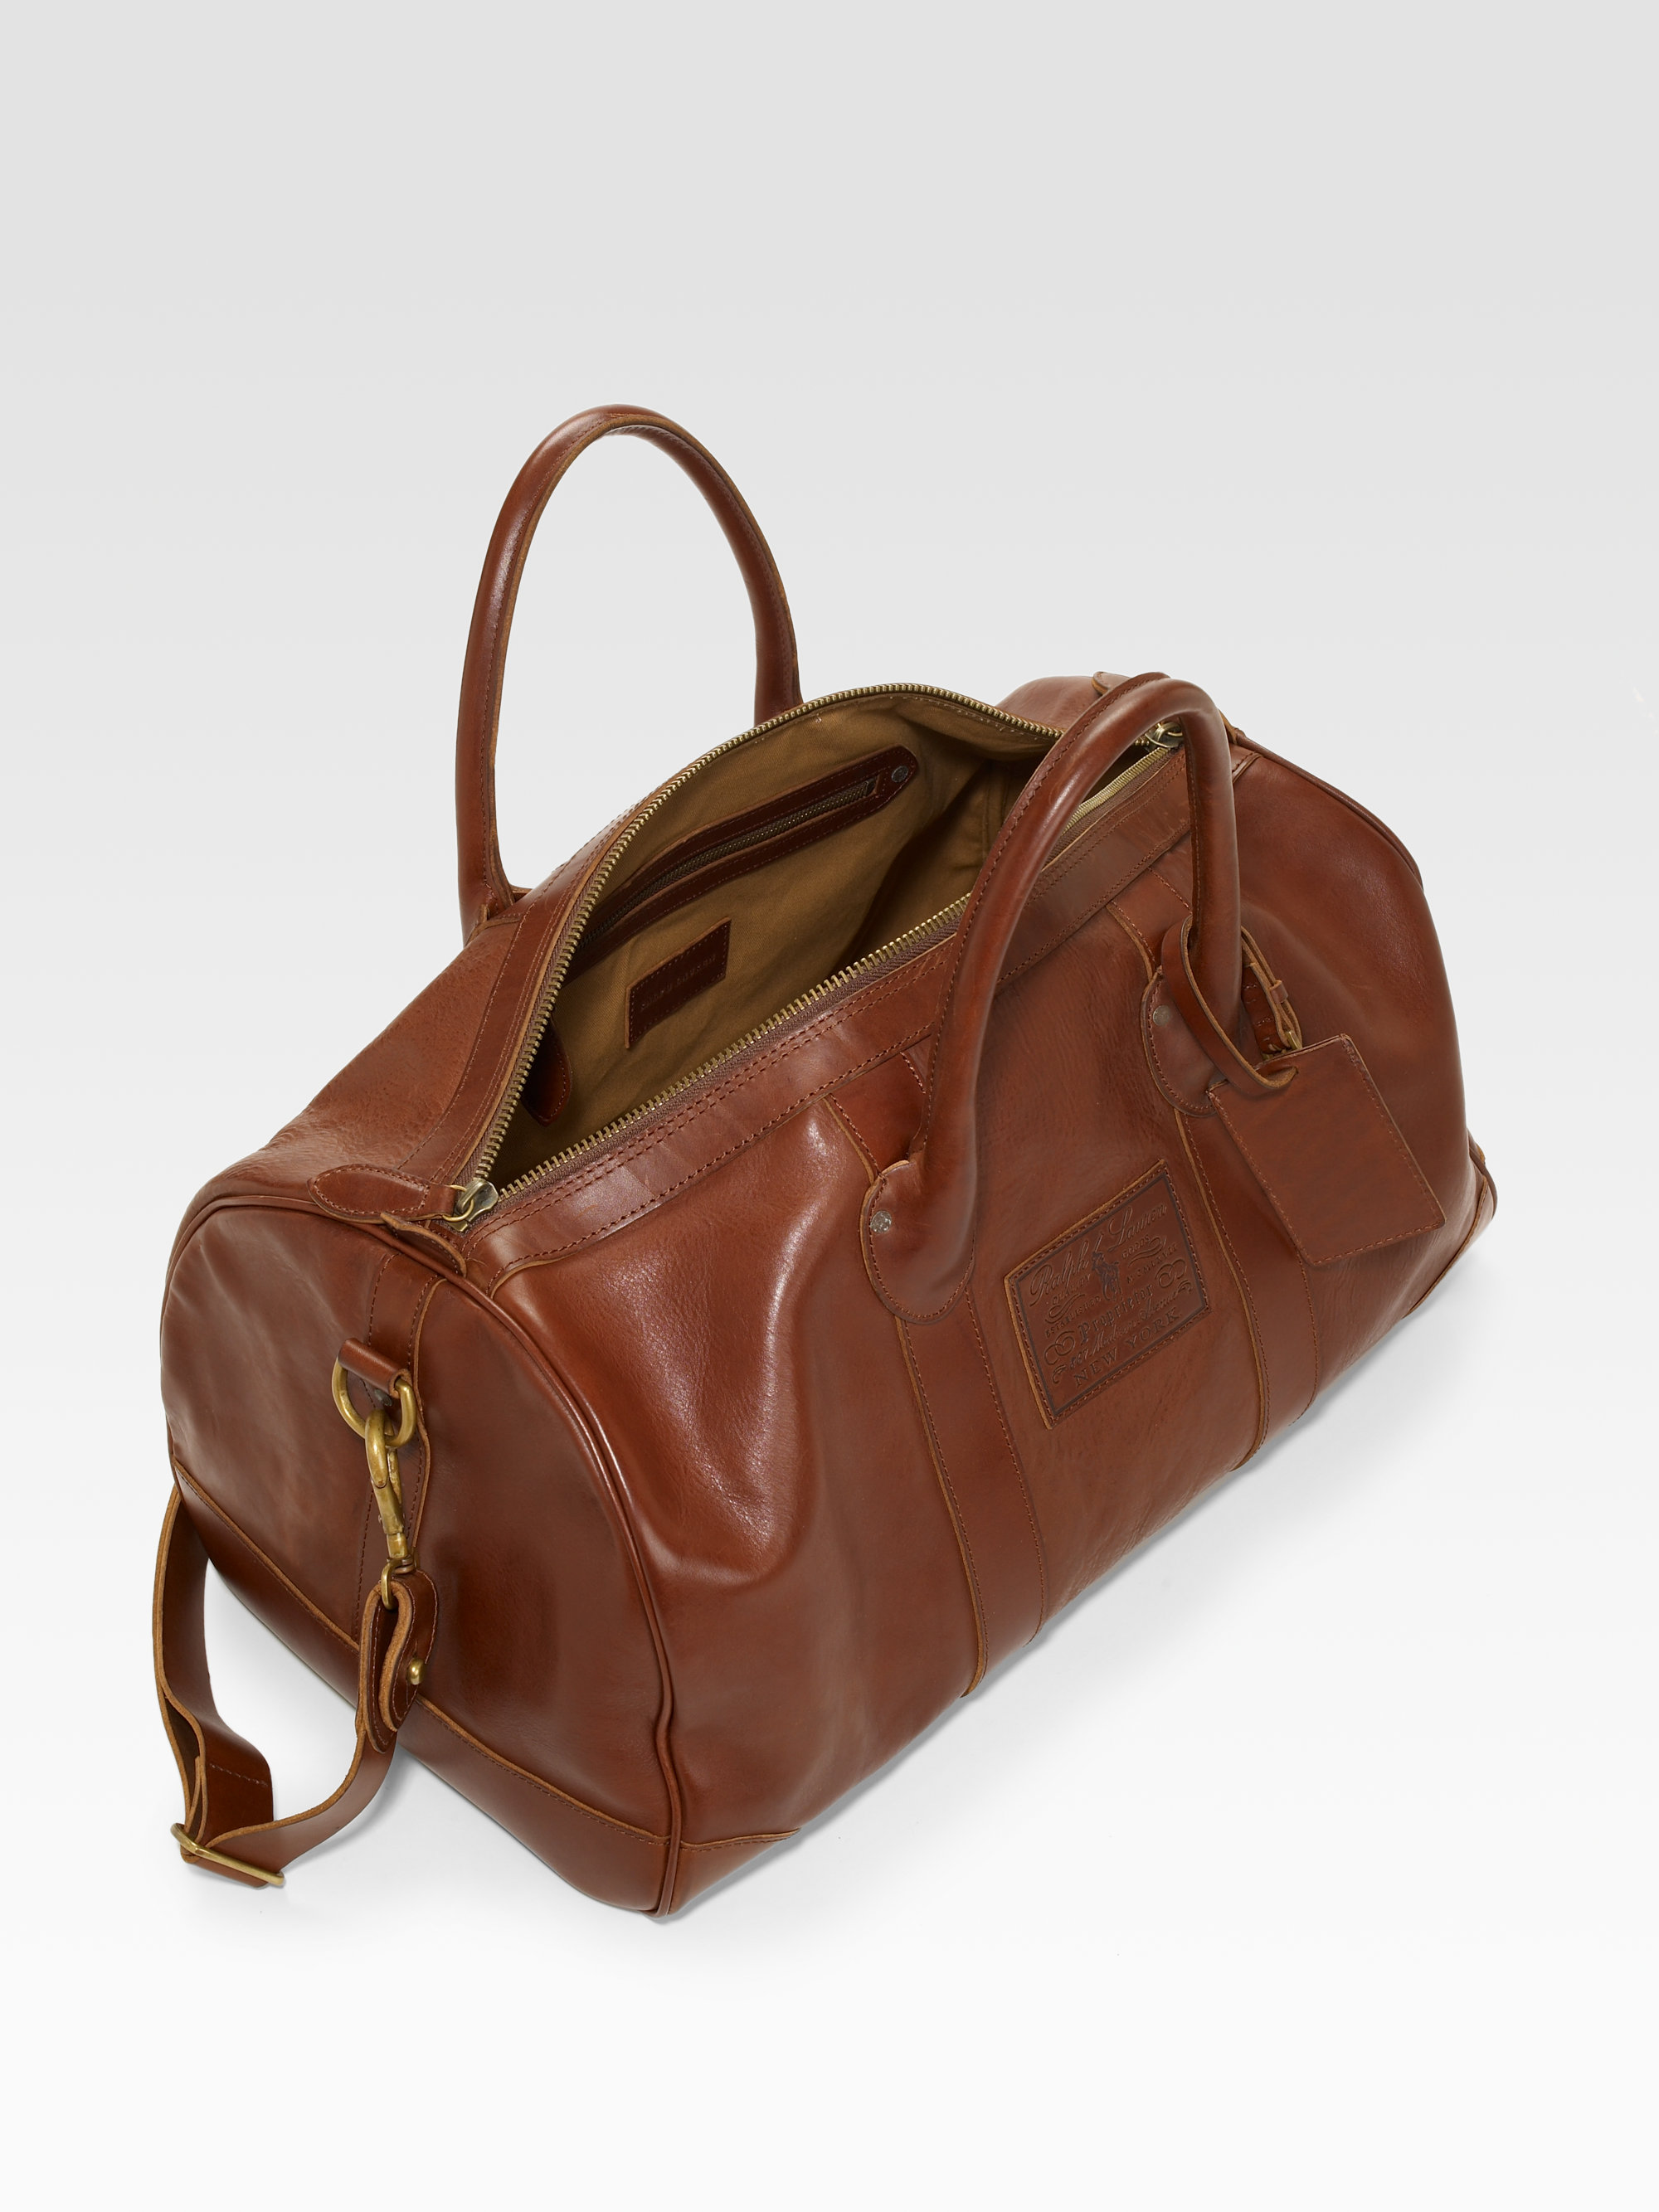 Lyst Polo Ralph Lauren Leather Holdall Bag In Brown For Men c89aee363236d